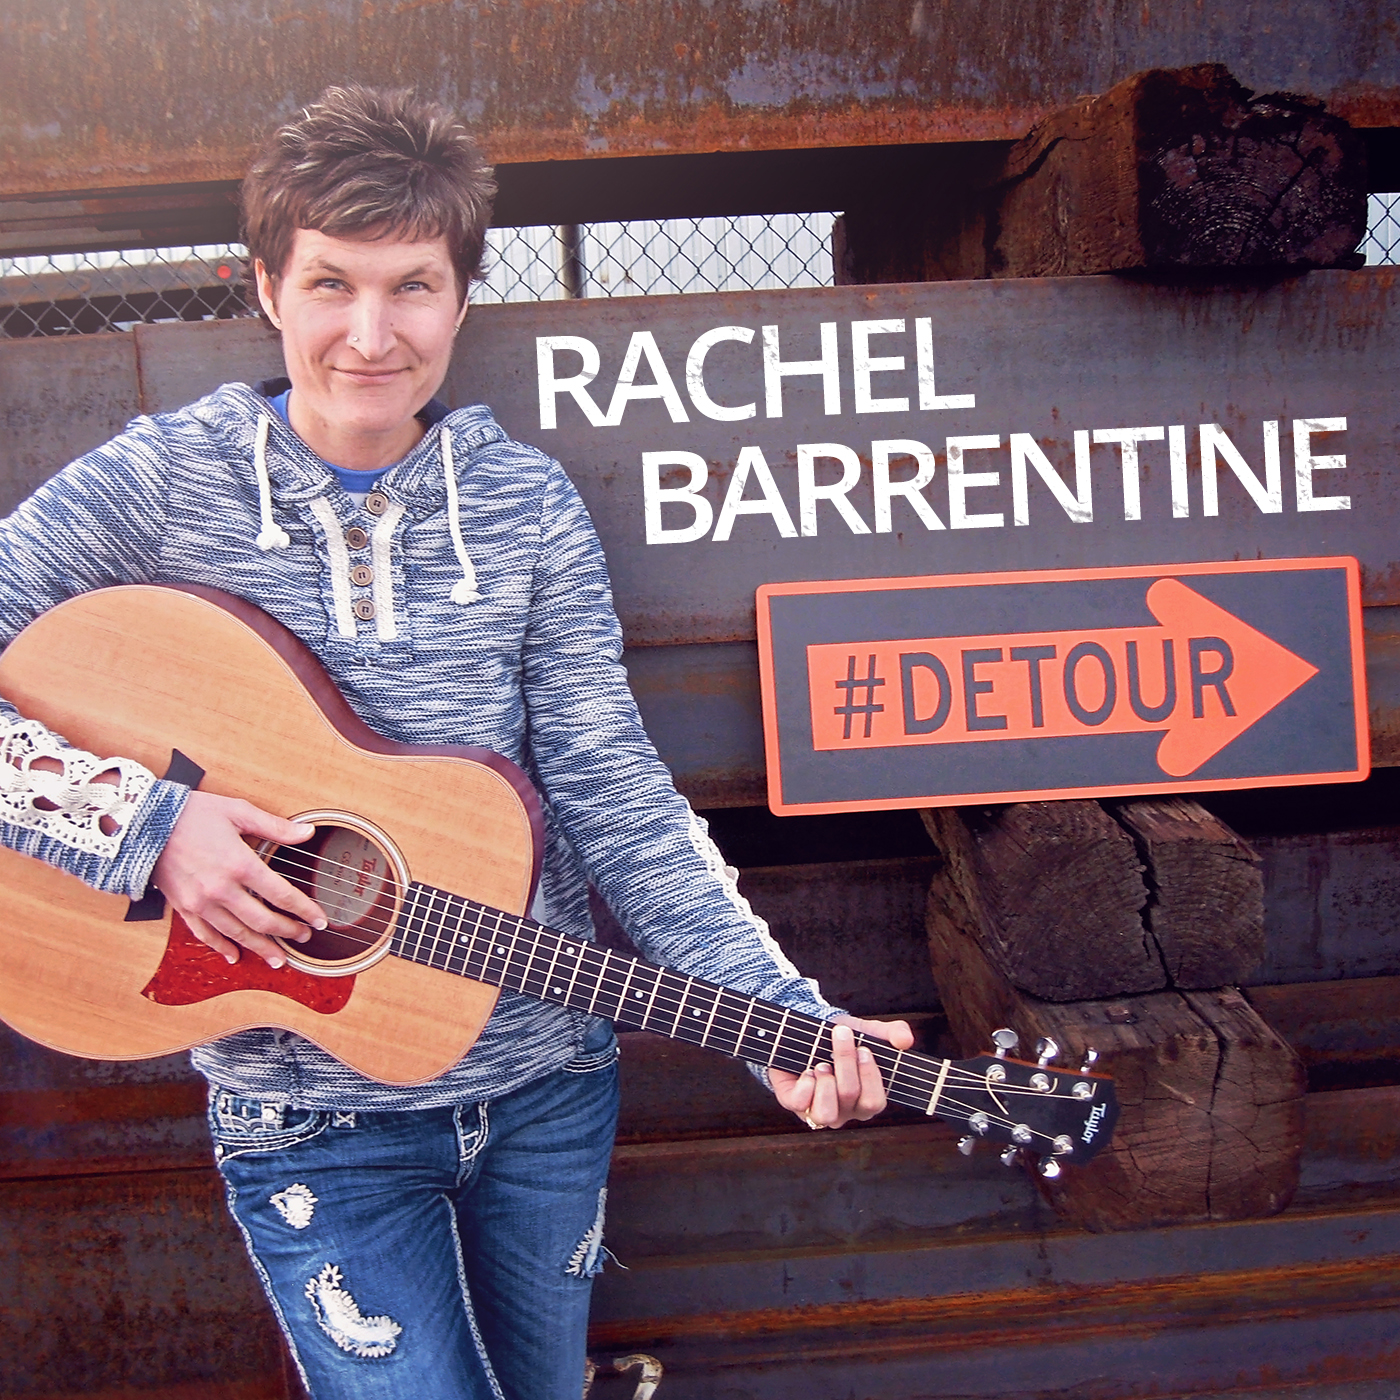 Rachel's latest album includes 11 original songs.